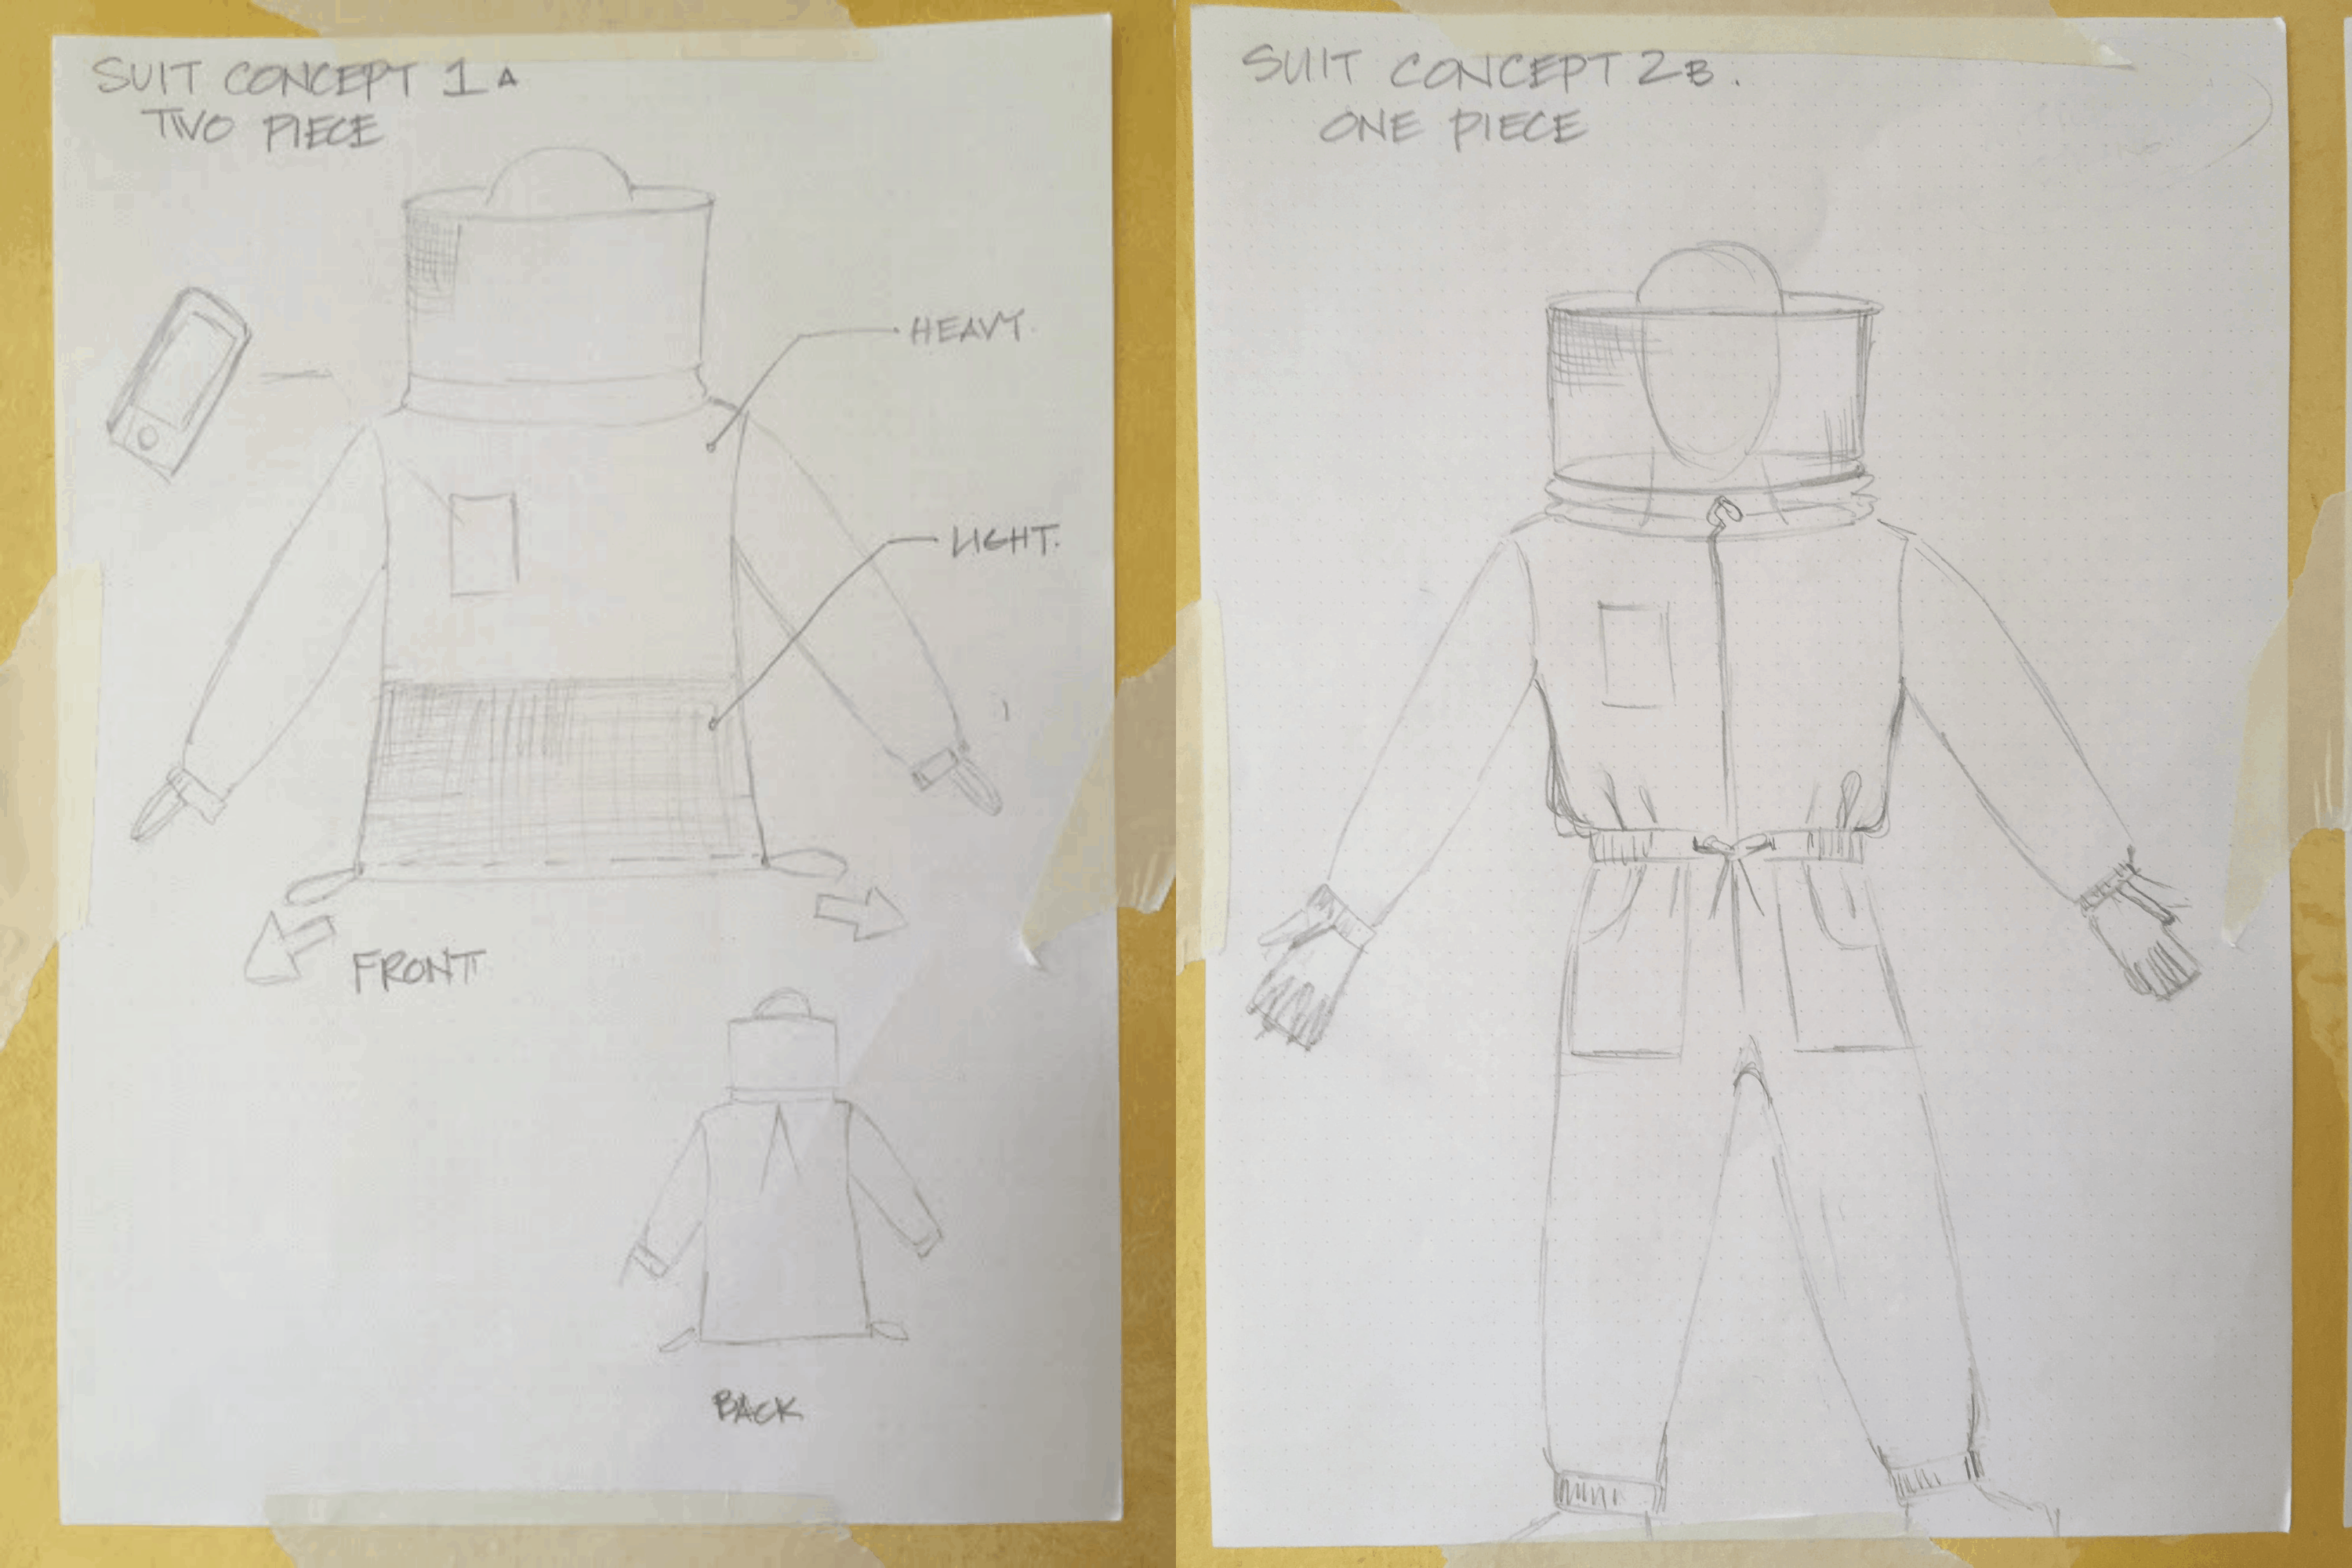 concept designs A and B of suits